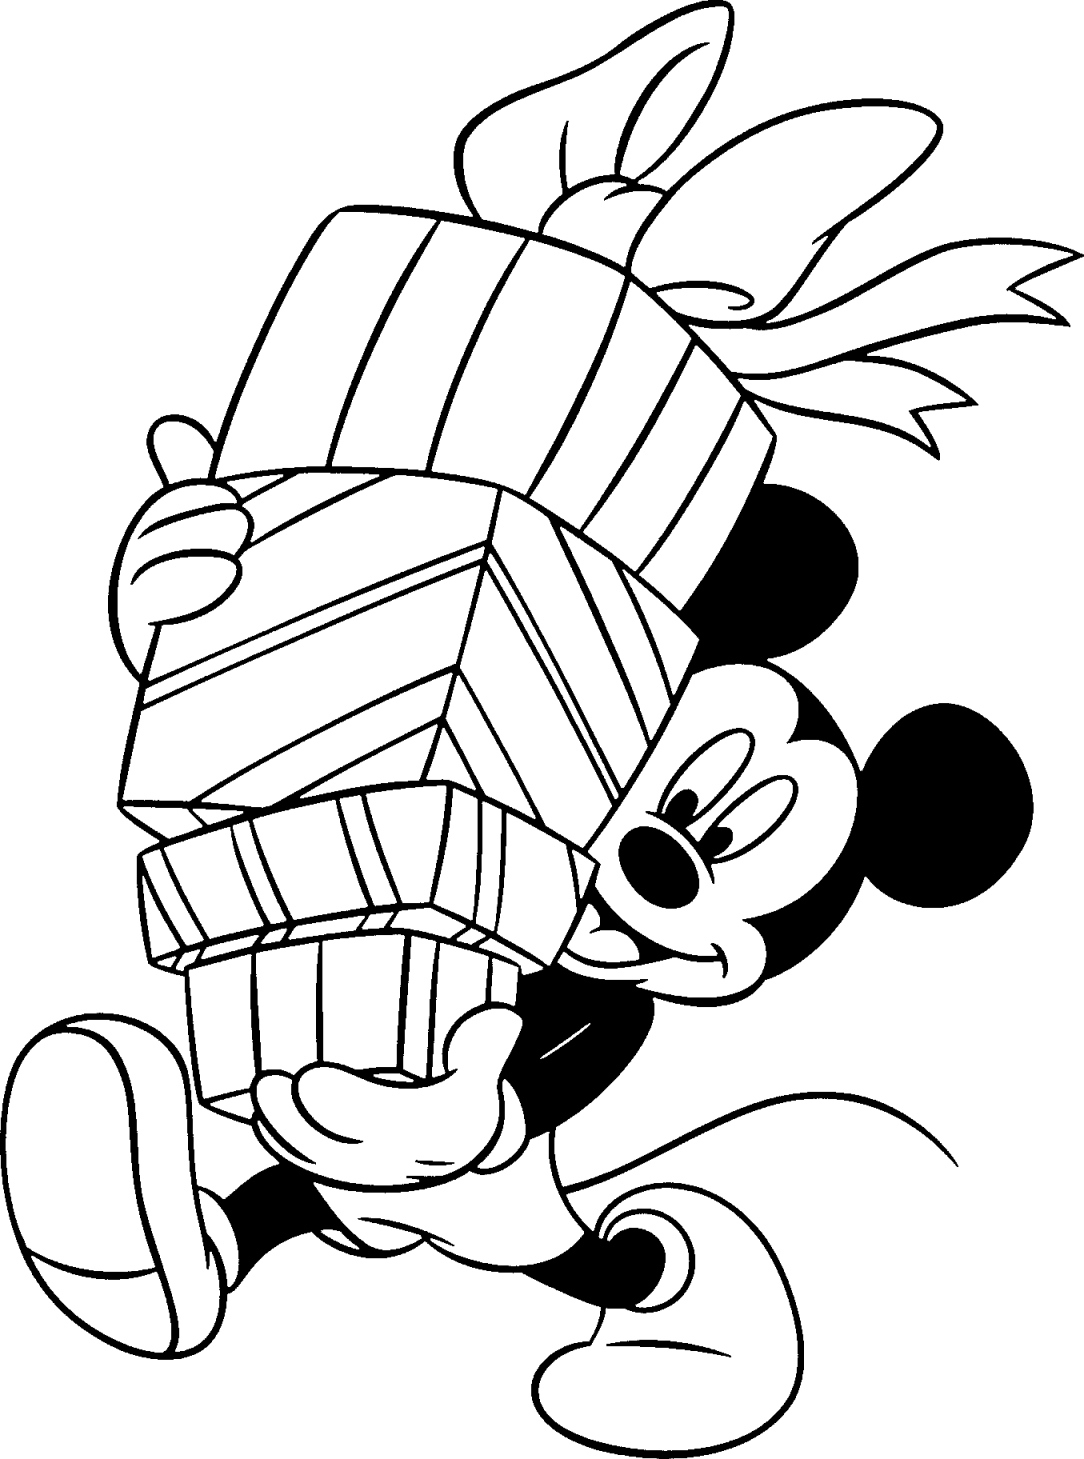 1084x1459 Free Disney Coloring Pages Best Of Printable Free Disney Christmas